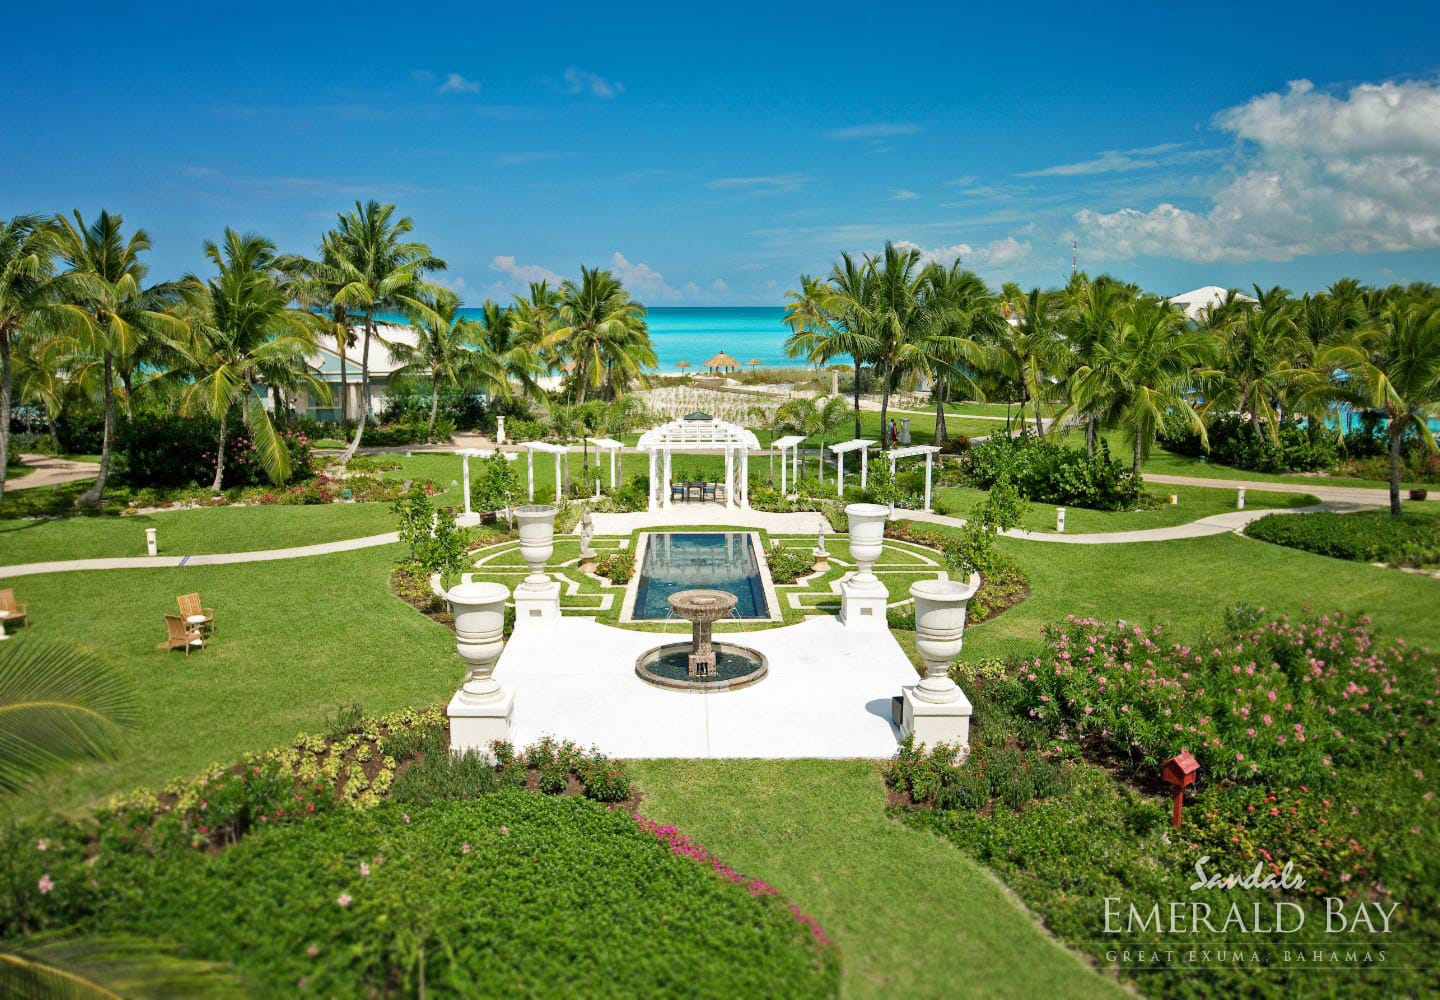 birdeye view over the Sandals Emerald Bay in the exotic Bahamian out islands, vacation can be planned with Southern Travel Agency Augusta, GA